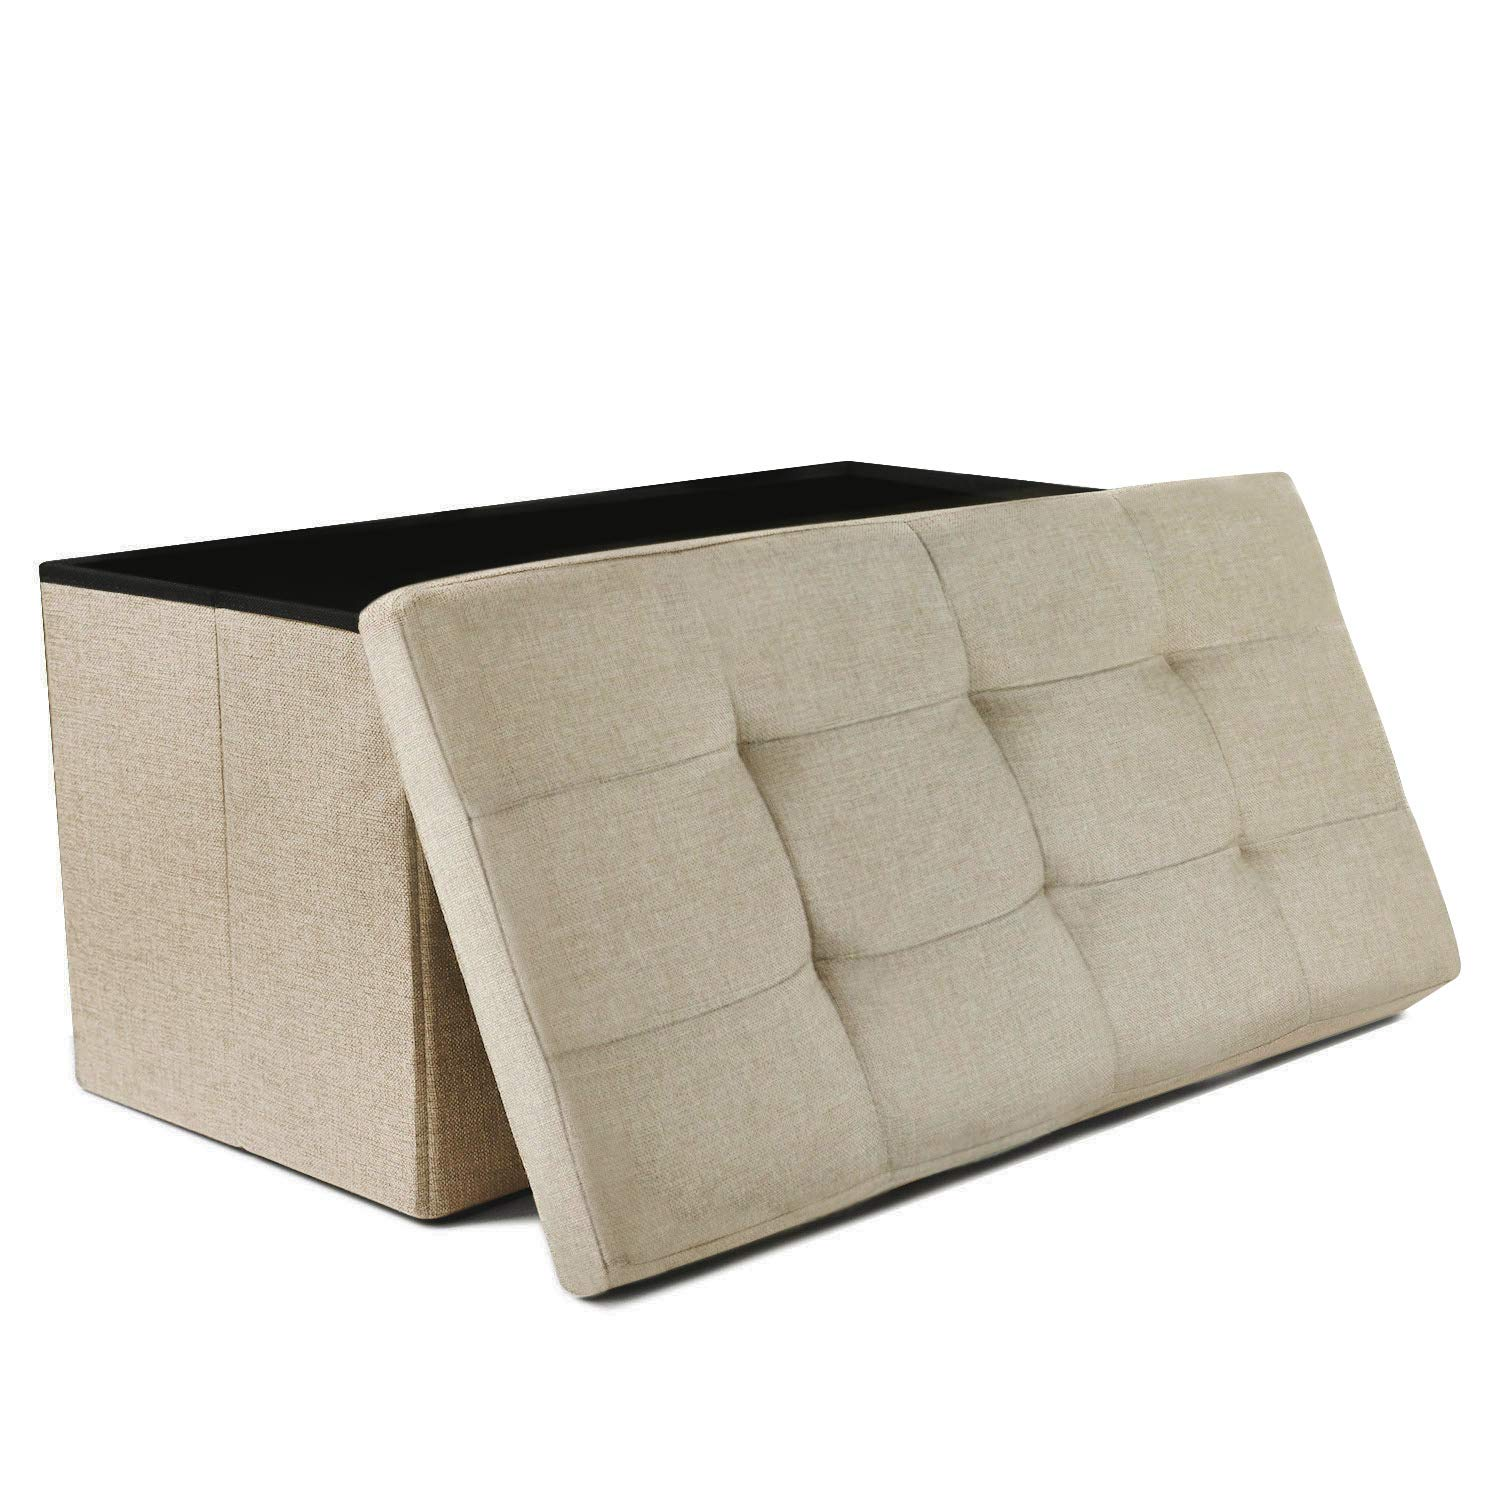 NISUNS OT03 30 Inch Linen Fabric Foldable Storage Bench Ottoman, Beige by NISUNS